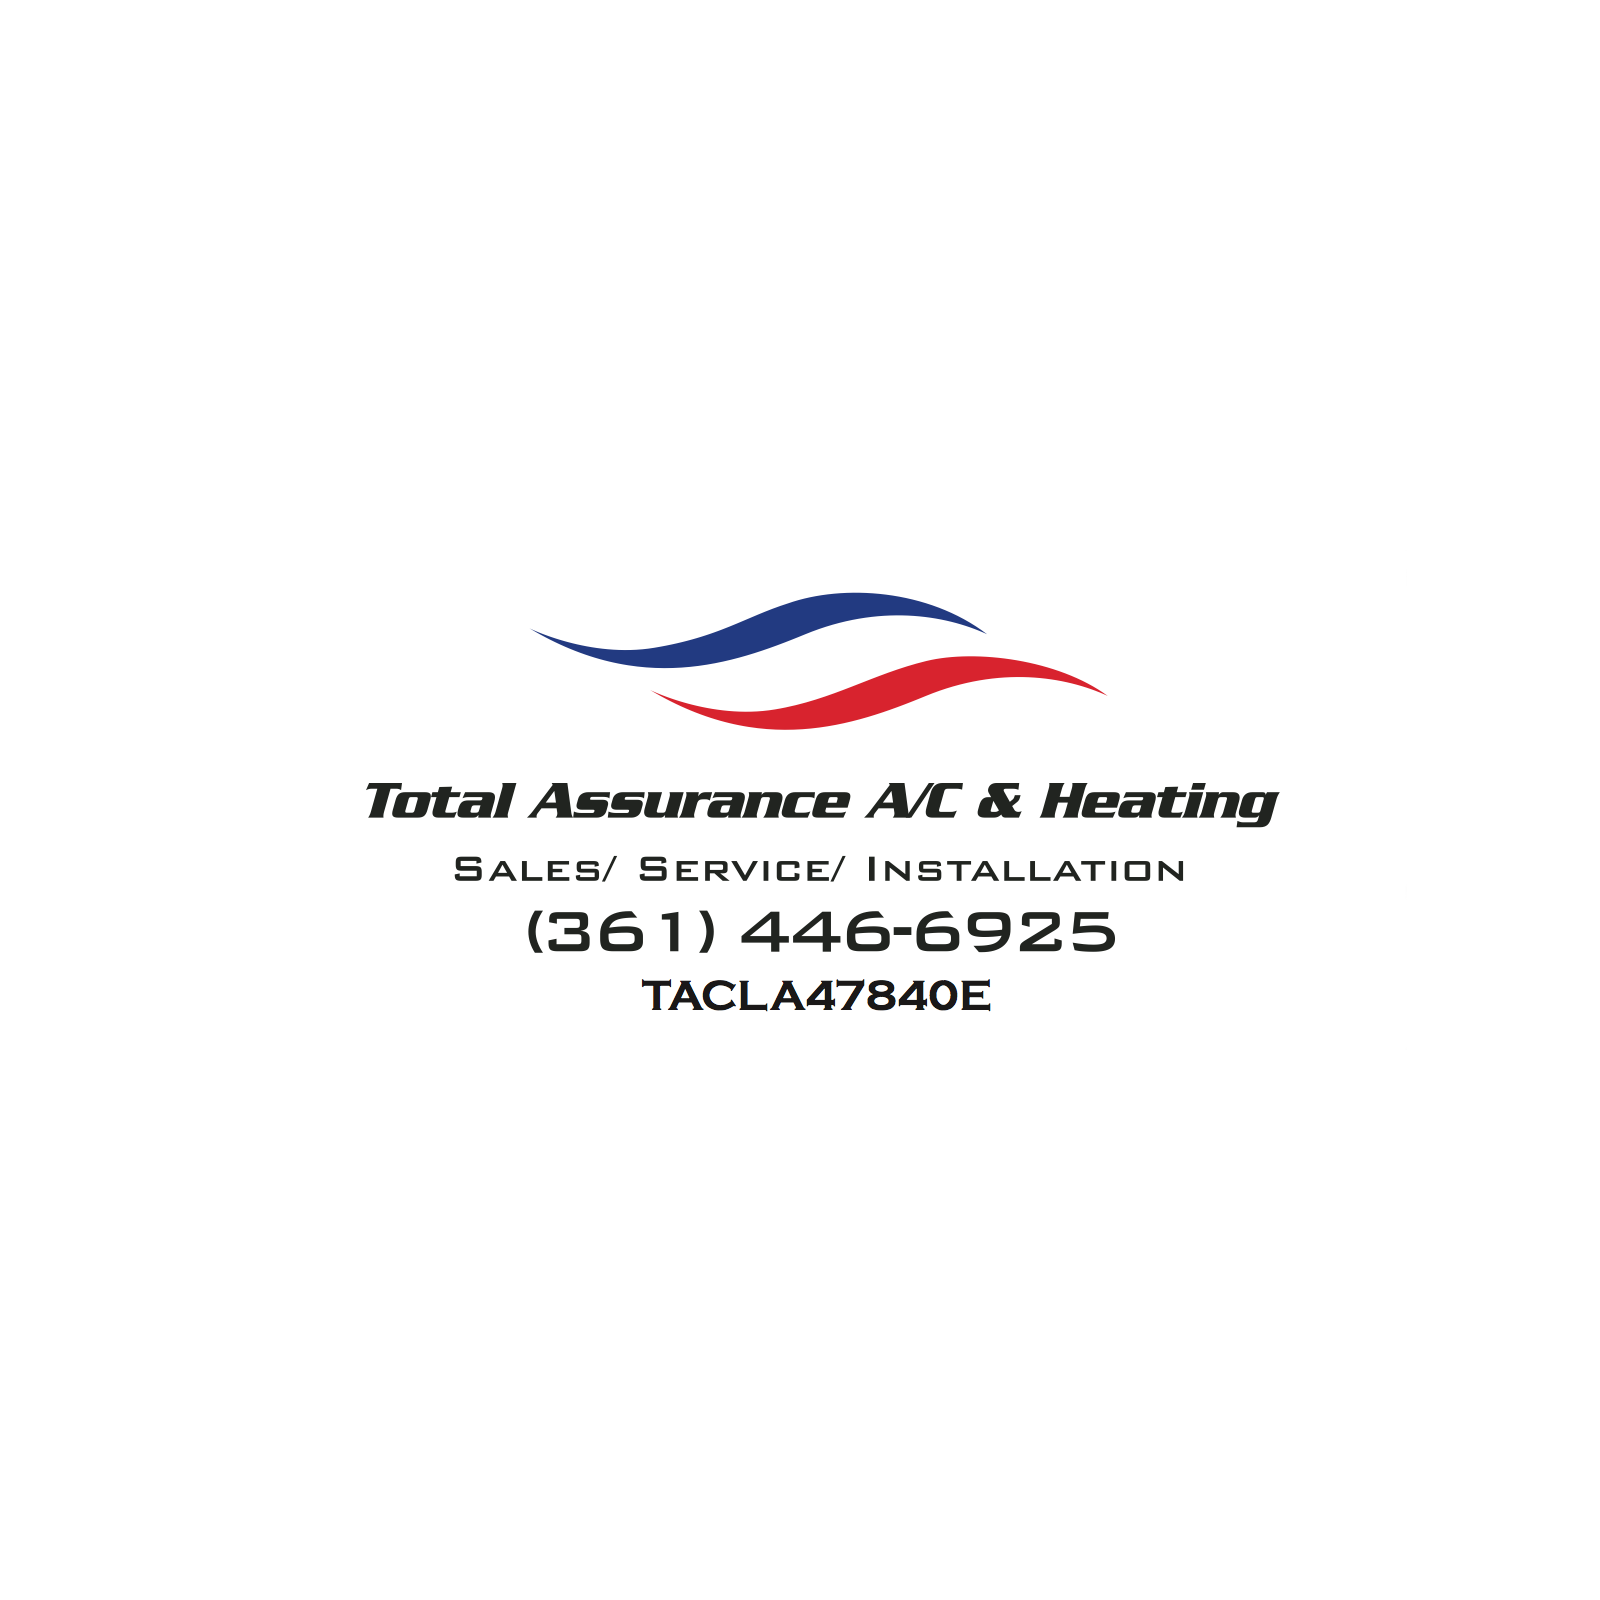 Total Assurance A/C & Heating